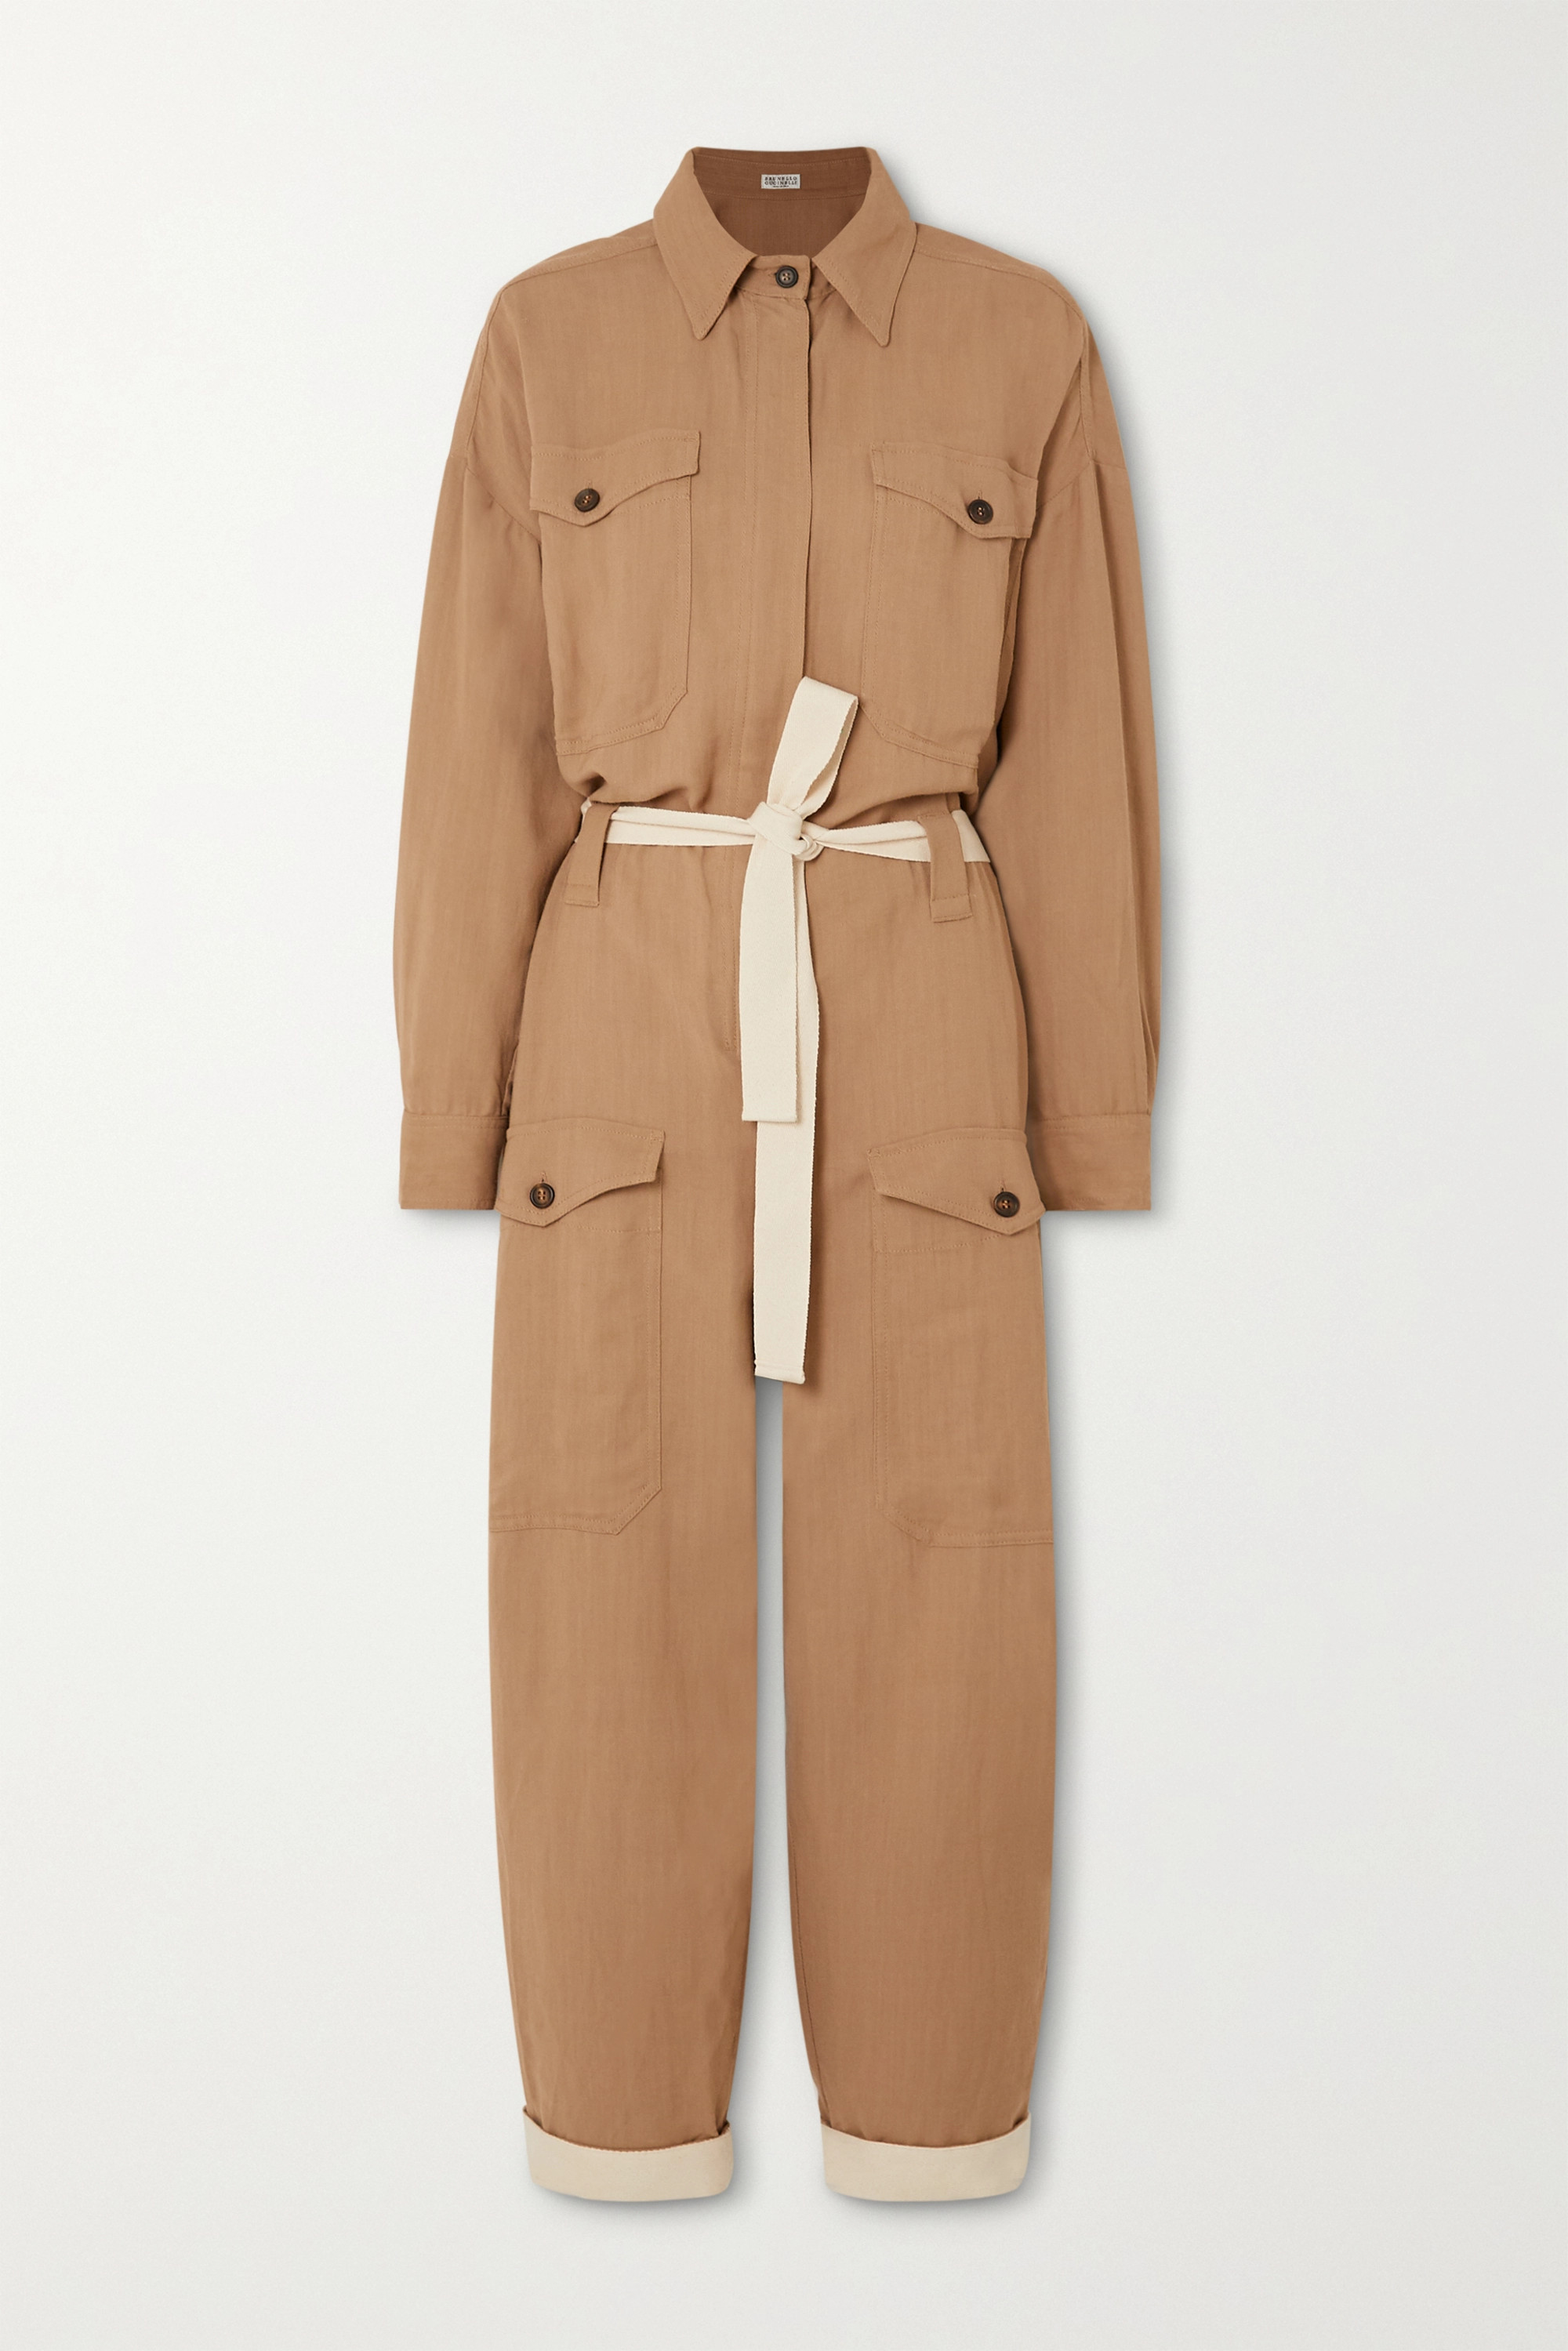 Brunello Cucinelli x Space for Giants 配腰带斜纹布连身裤